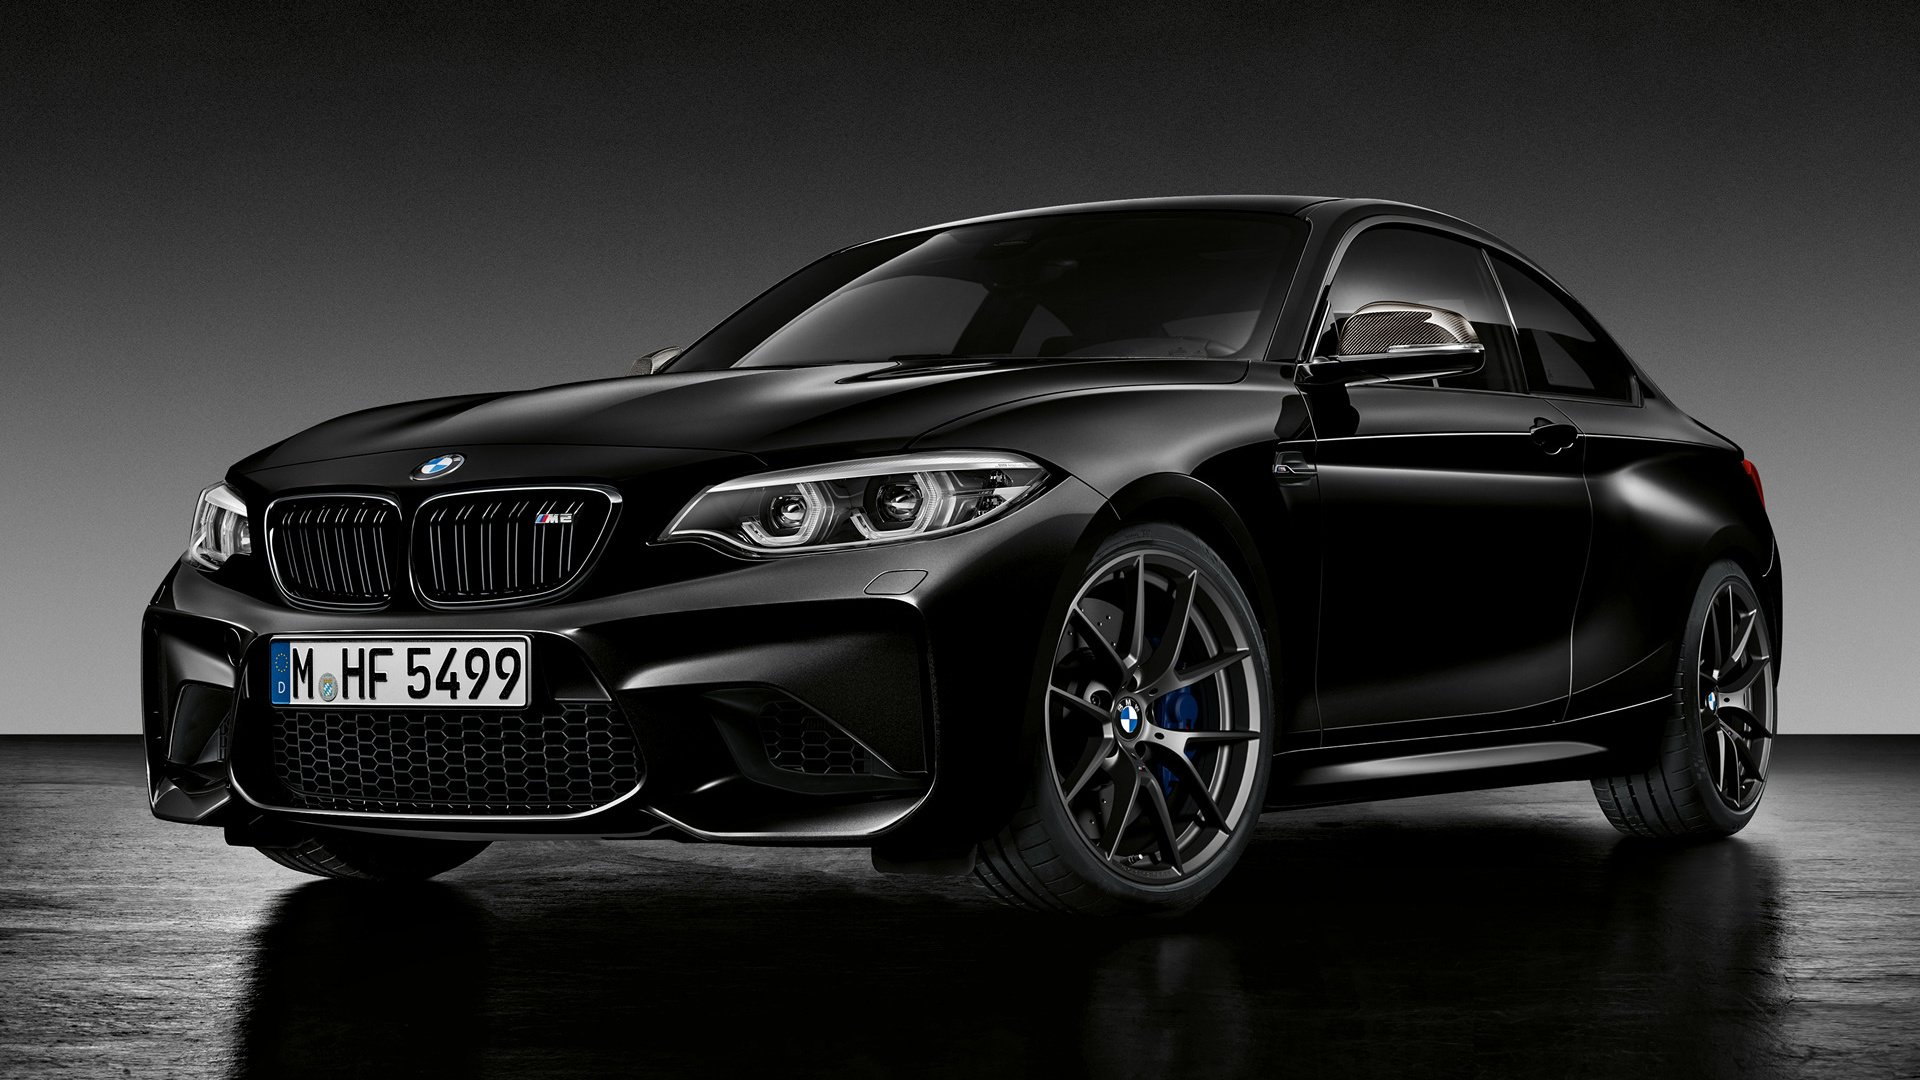 1920x1080 - BMW M2 Coupe Wallpapers 25